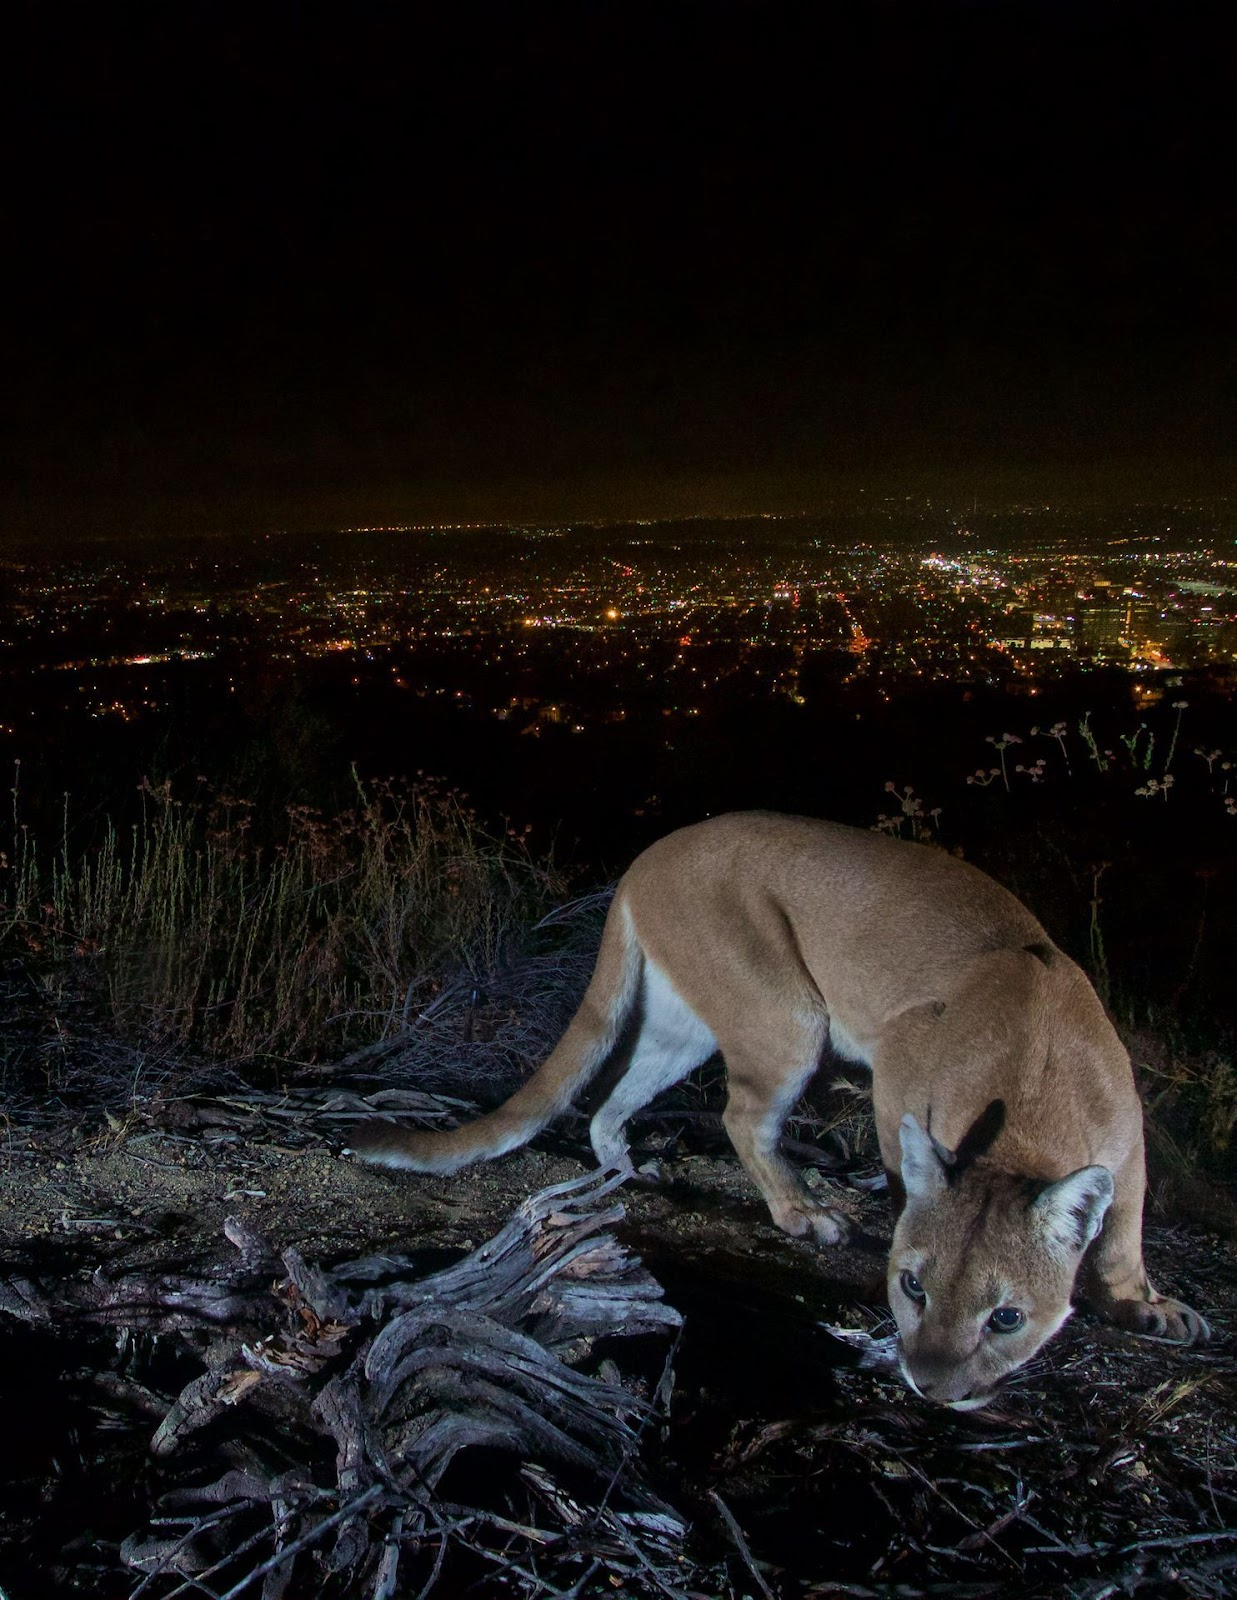 Mountain lion in Los Angeles.